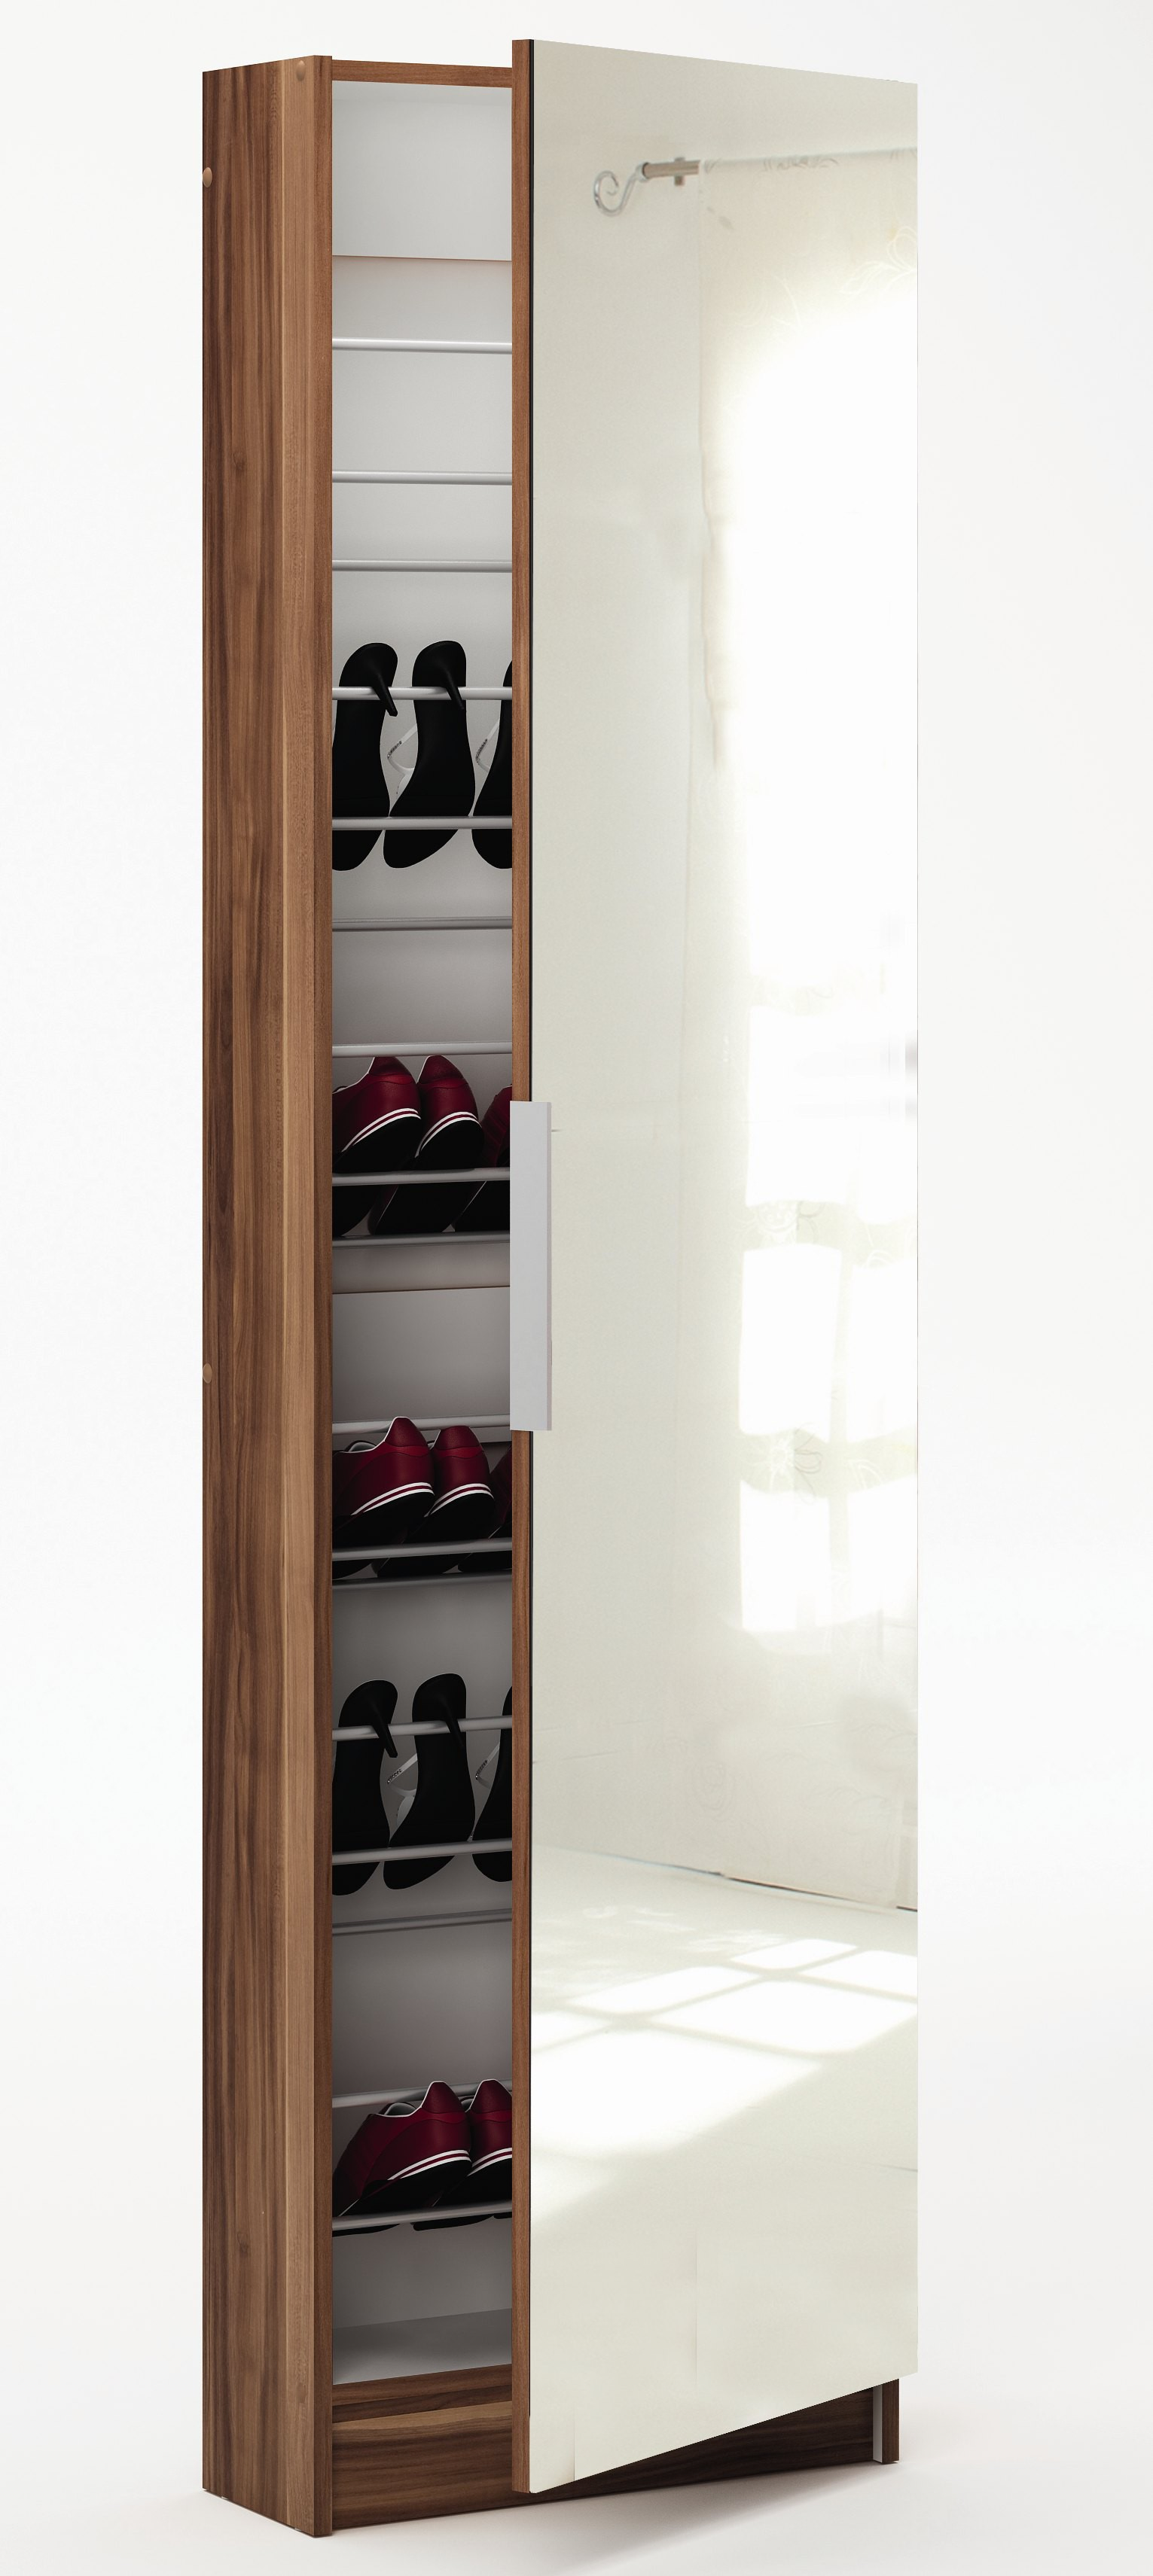 meuble chaussures alinea 18 id es de d coration int rieure french decor. Black Bedroom Furniture Sets. Home Design Ideas